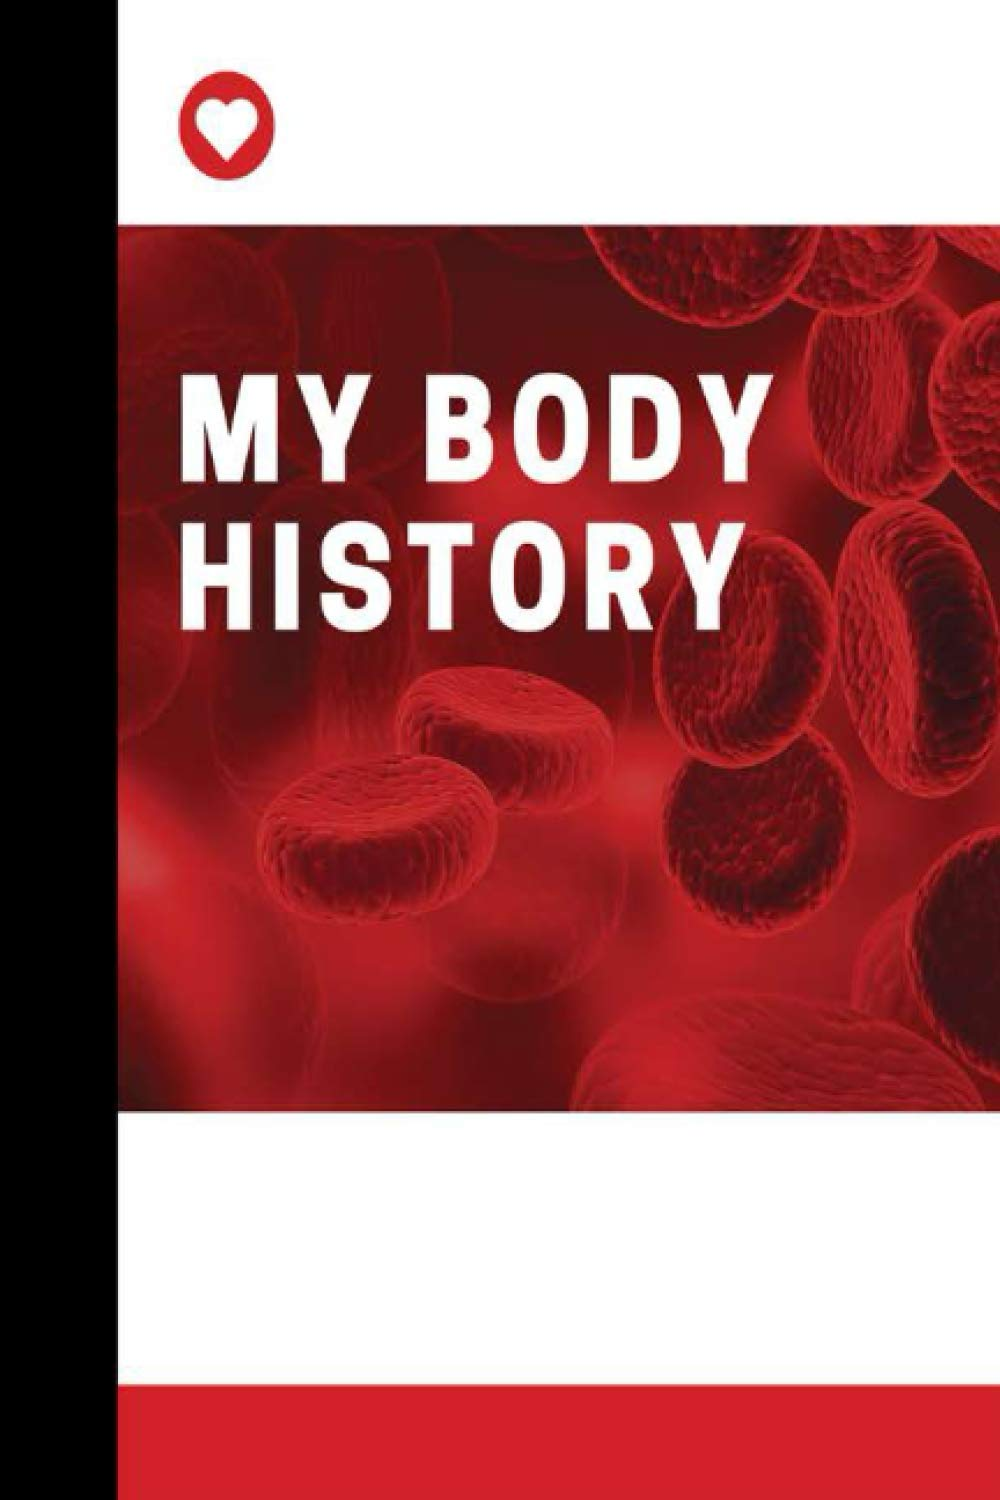 My Body History: Comprehensive medical and health record book for  organizing your medical history, health records, and emergency information:  Sykes, Gary J.: 9798691660702: Amazon.com: Books